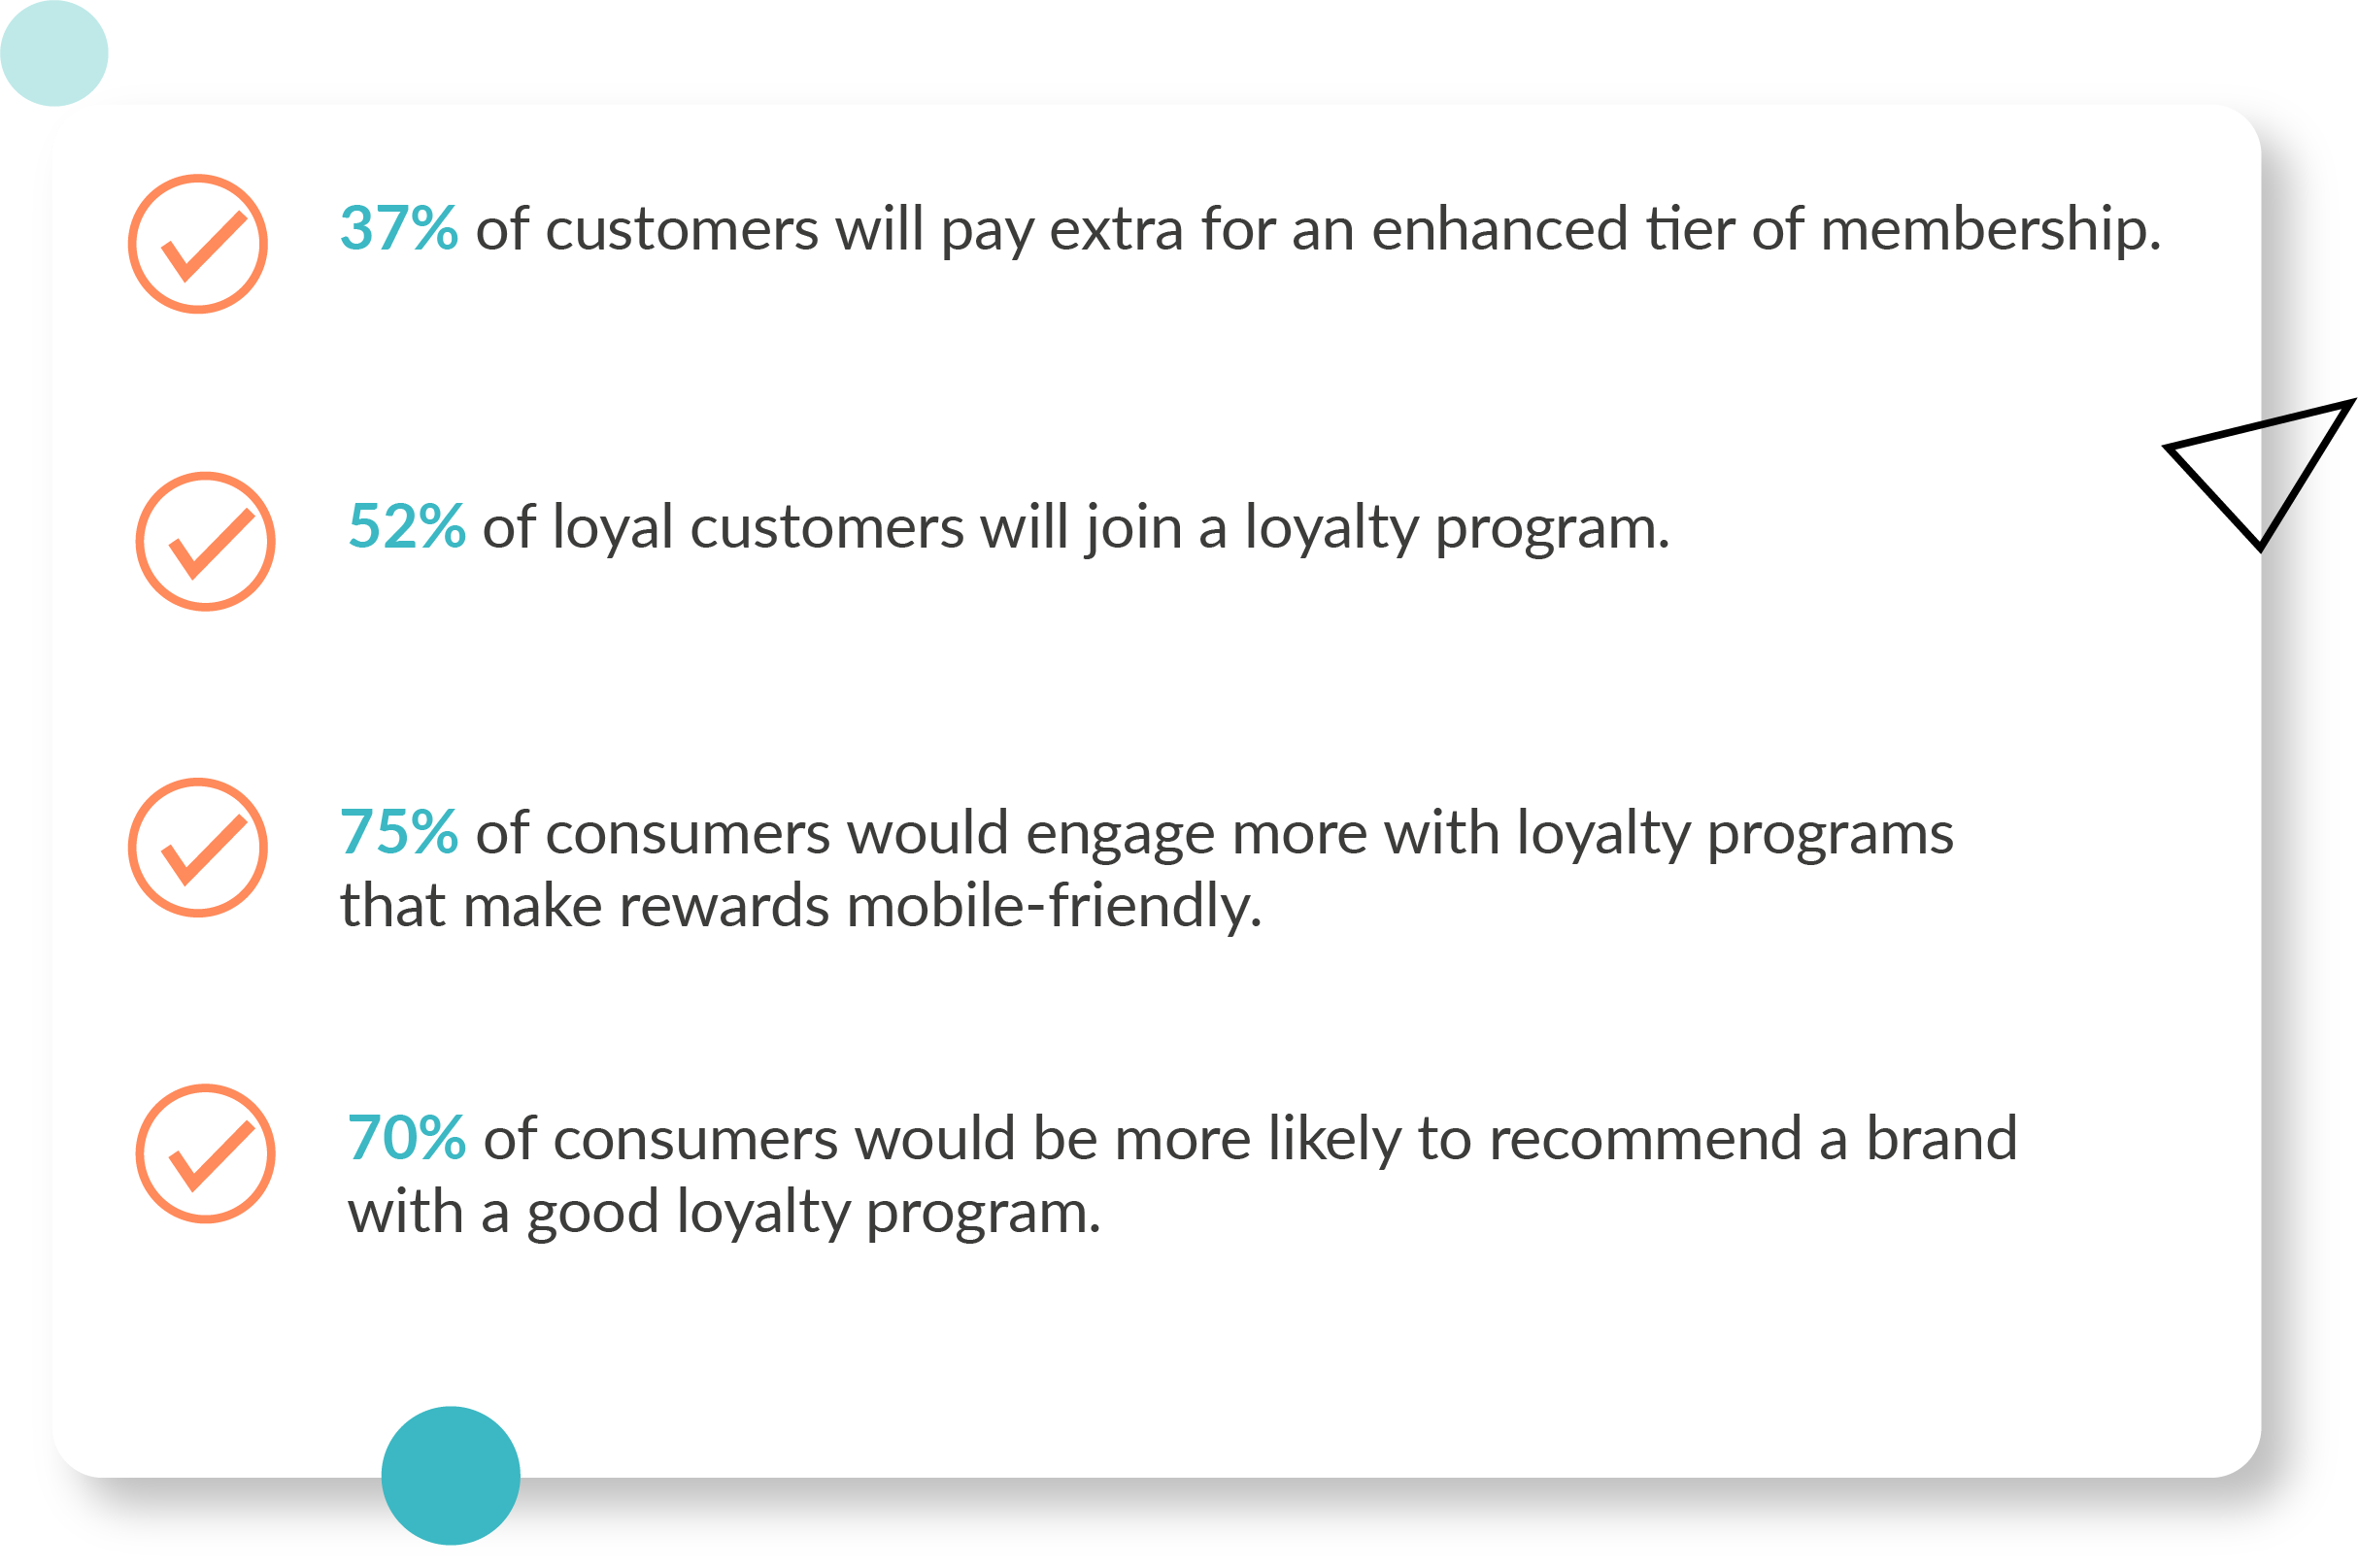 Customer loyalty trends and statistics 2